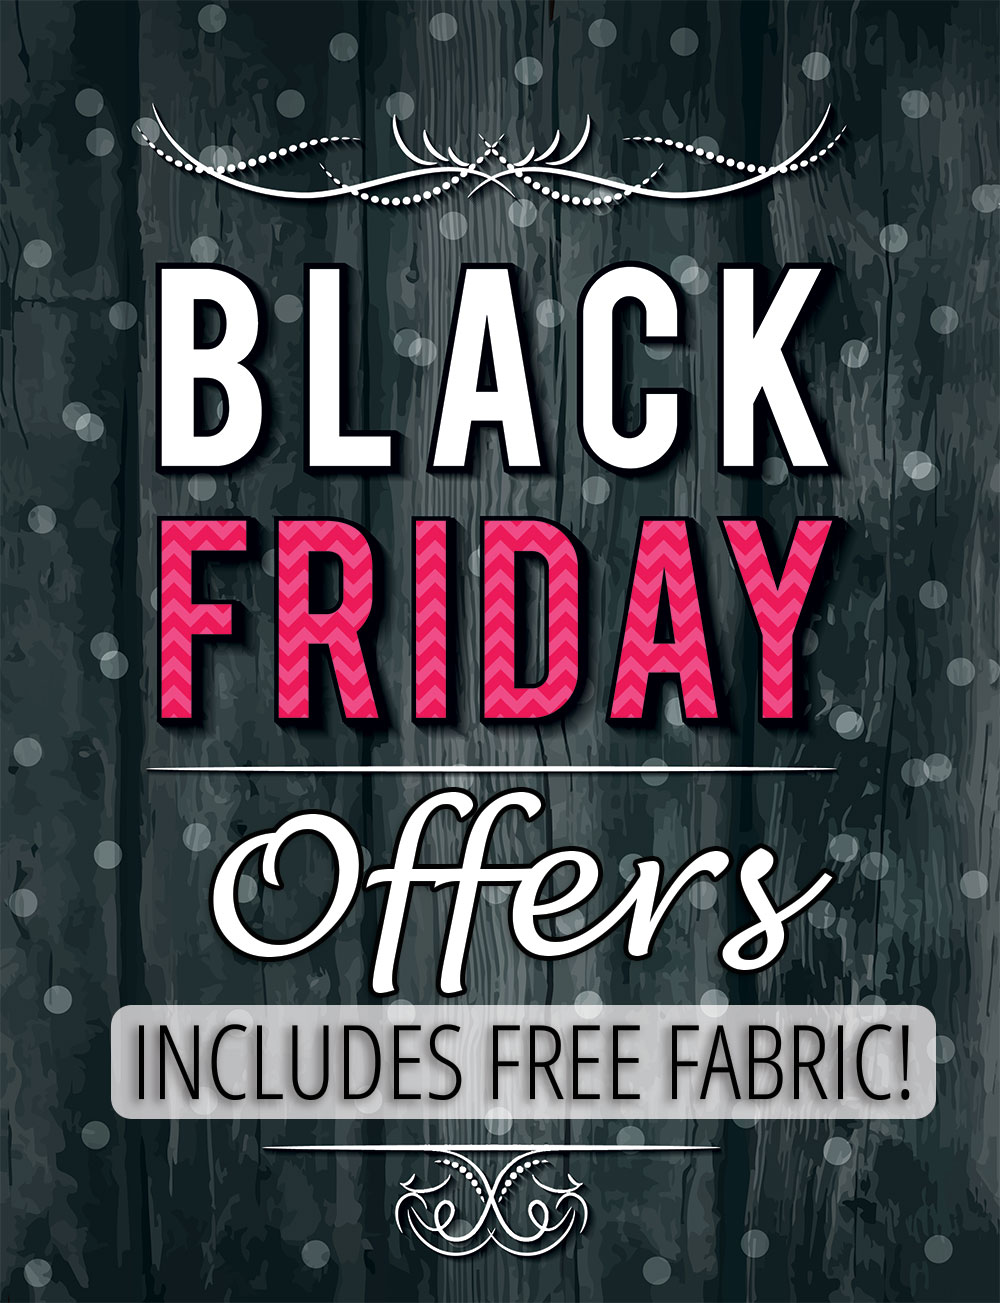 8 days: 8 great offers for BLACK FRIDAY